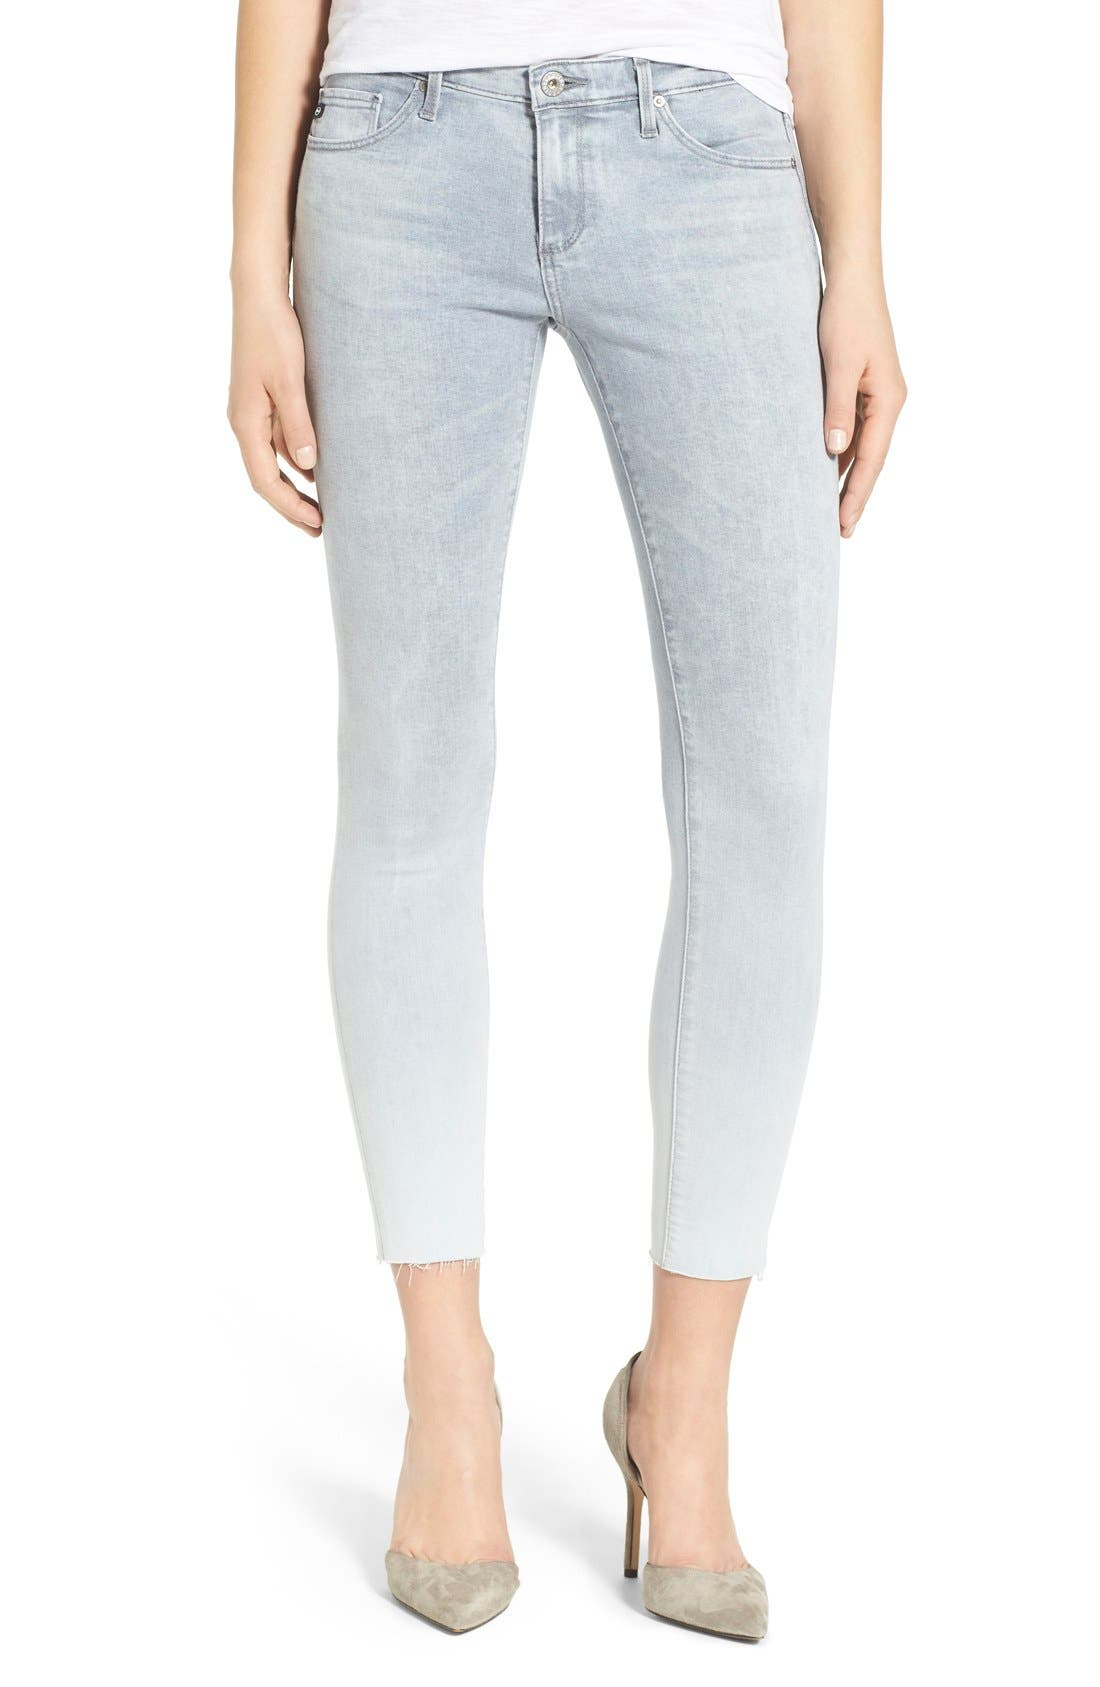 'The Legging' Raw Edge Ankle Skinny Jeans,                         Main,                         color, Optical Moon